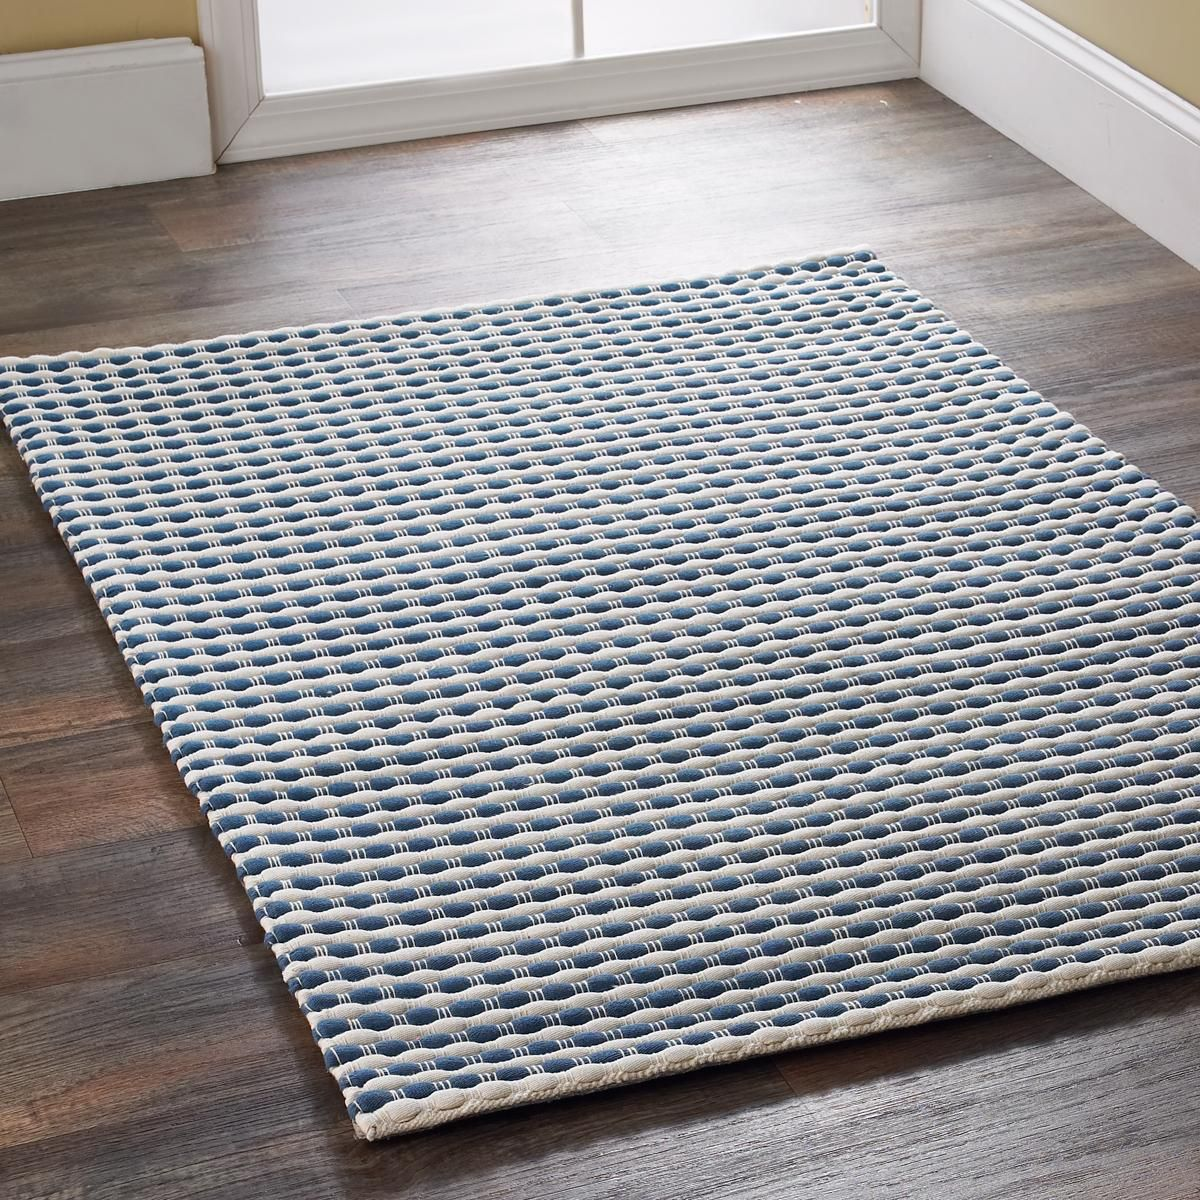 Feel Good Cotton Flatweave Rugs Our Feel Good Cotton Flatweave Is Aptly Named For Dual Benefits A Percentage Of These Rug Sale Flat Weave Rug Flat Weave Rugs